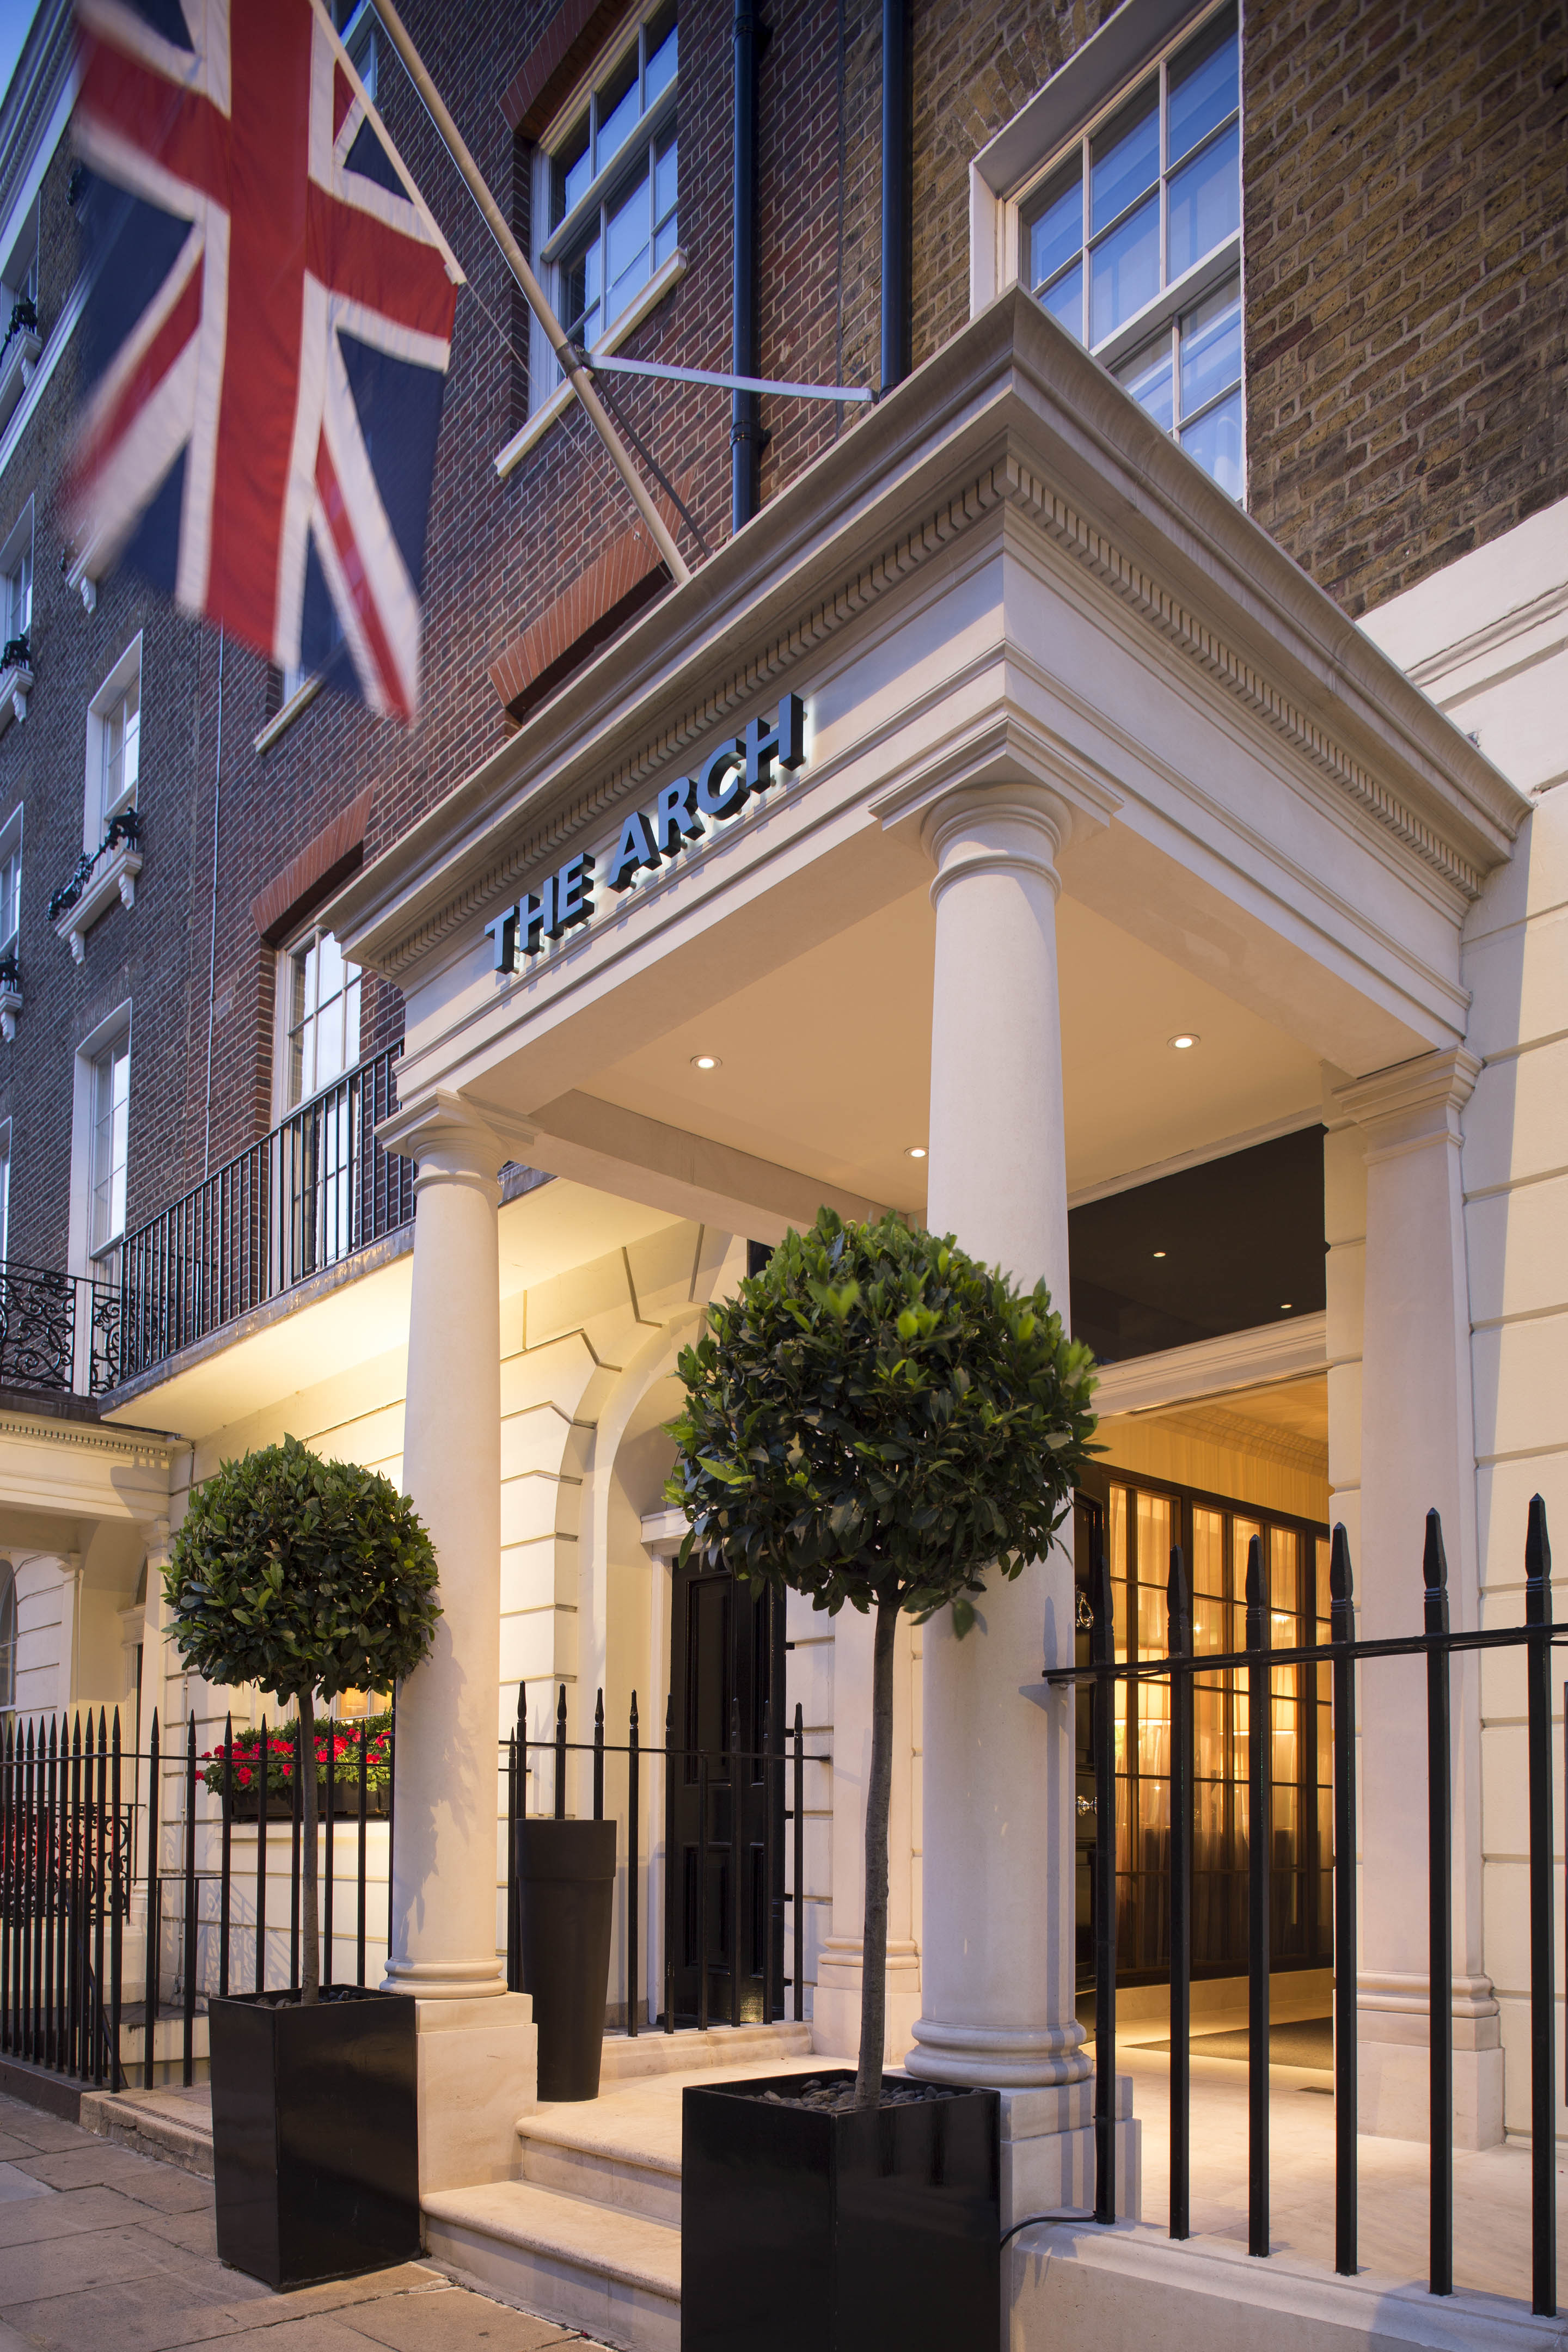 Kid friendly London hotel, London family hotels, London for families, child friendly hotels in London